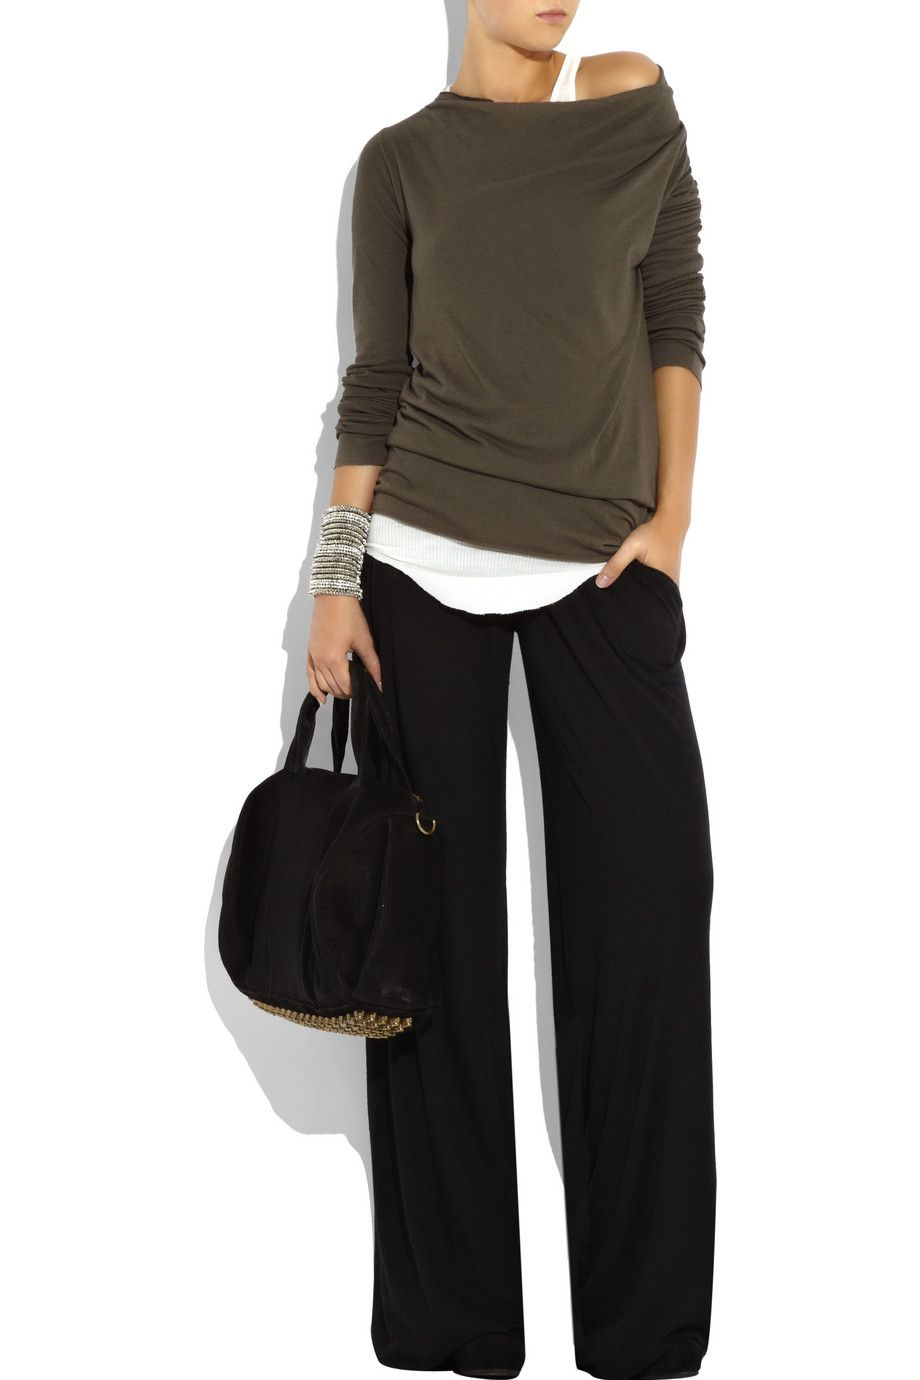 """This outfit is perfect for a TRIANGLE or PEAR shape, with fuller hips and bottom. The attention drawn up to the shoulder is great, combined with the  wide leg pants to balance out her shape. The layered tops are correctly positioned, hitting below her """"widest"""" point. Comfortable and chic!"""